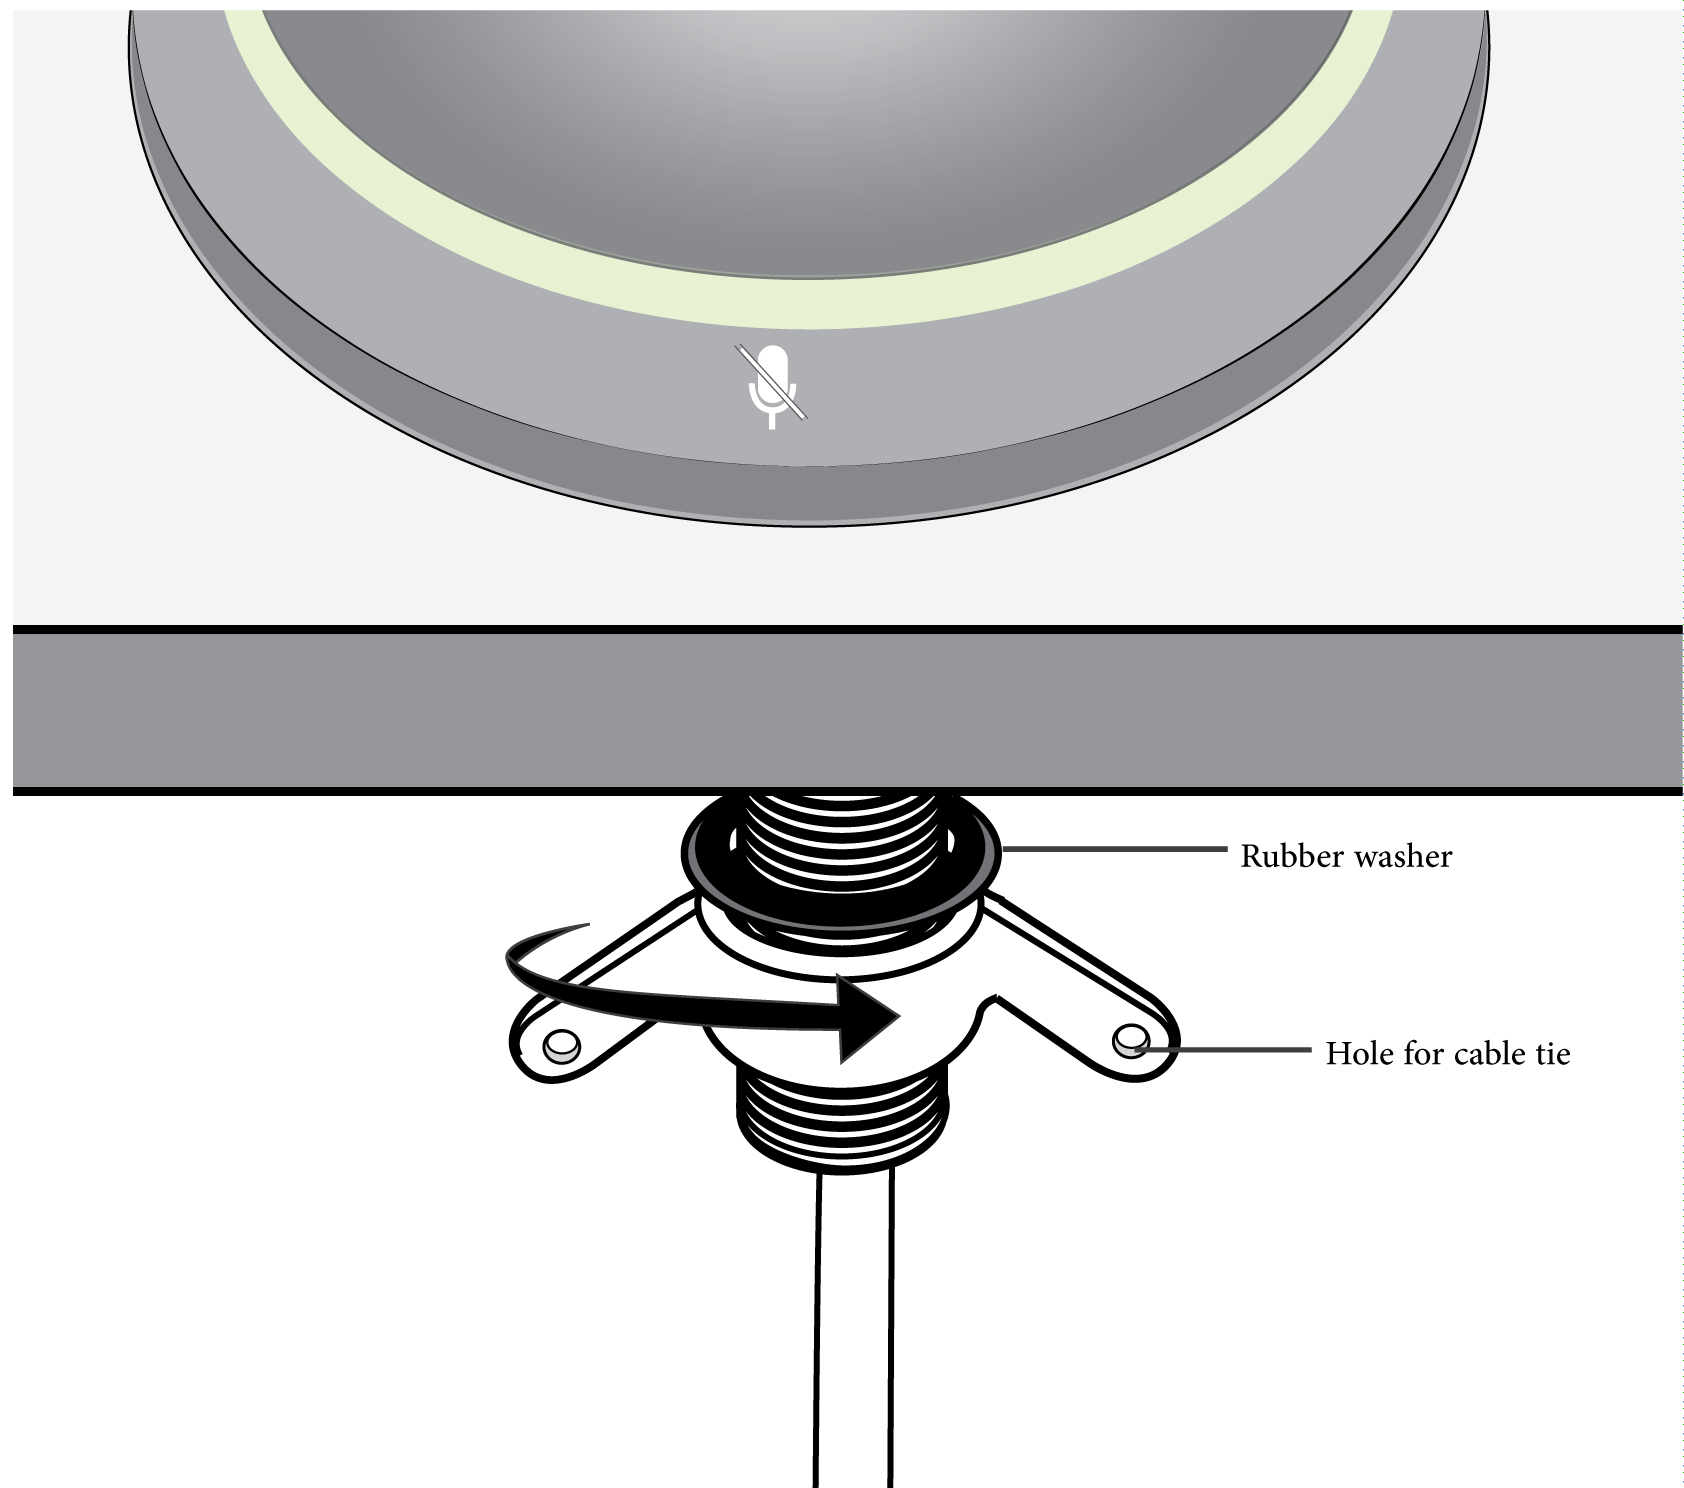 Shure Publications User Guides Mxa310 4 Wire Proximity Cable Wiring Diagram Optional Use The Hole In Wing Nut To Insert A Tie For Management